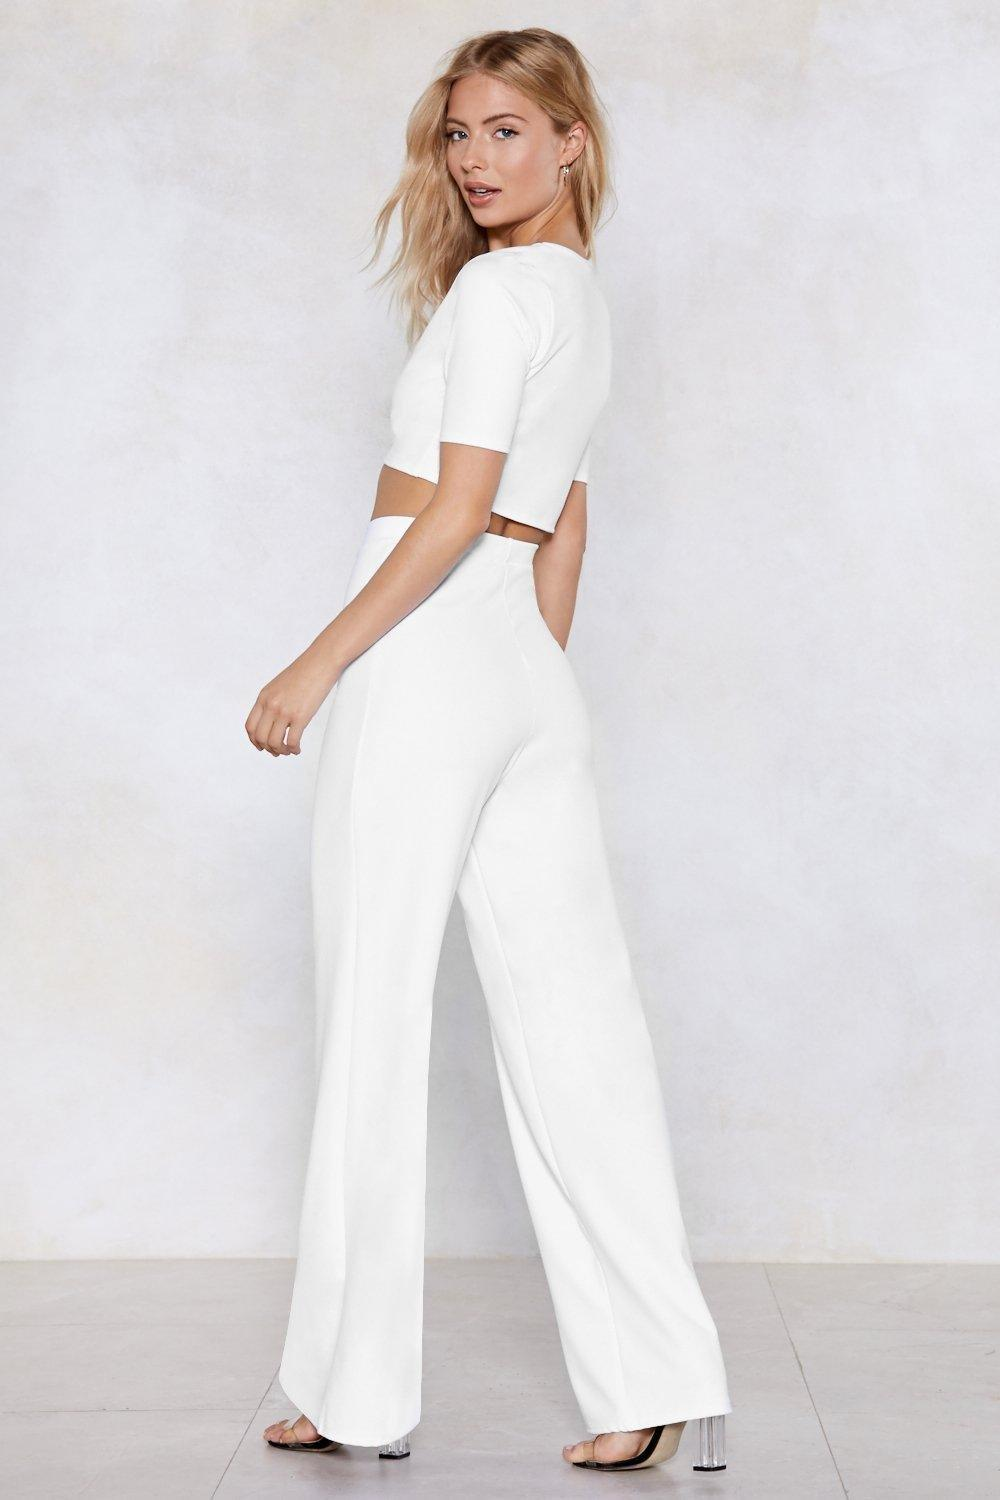 c7411f6277d Settle the Score Crop Top and Pants Set | Shop Clothes at Nasty Gal!